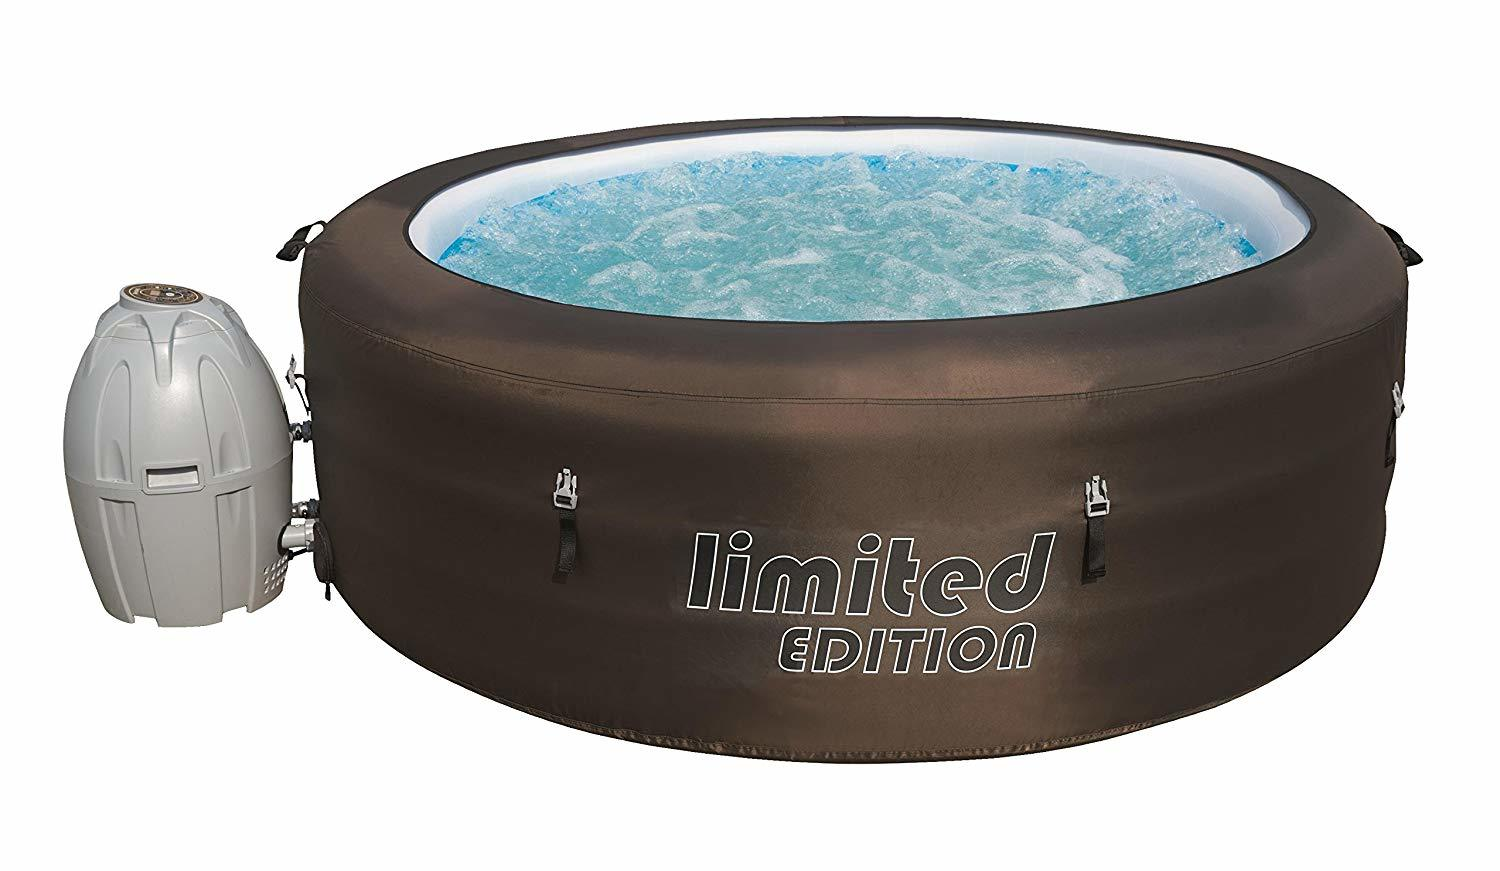 spa gonflable 6 personnes - spa gonflable rond